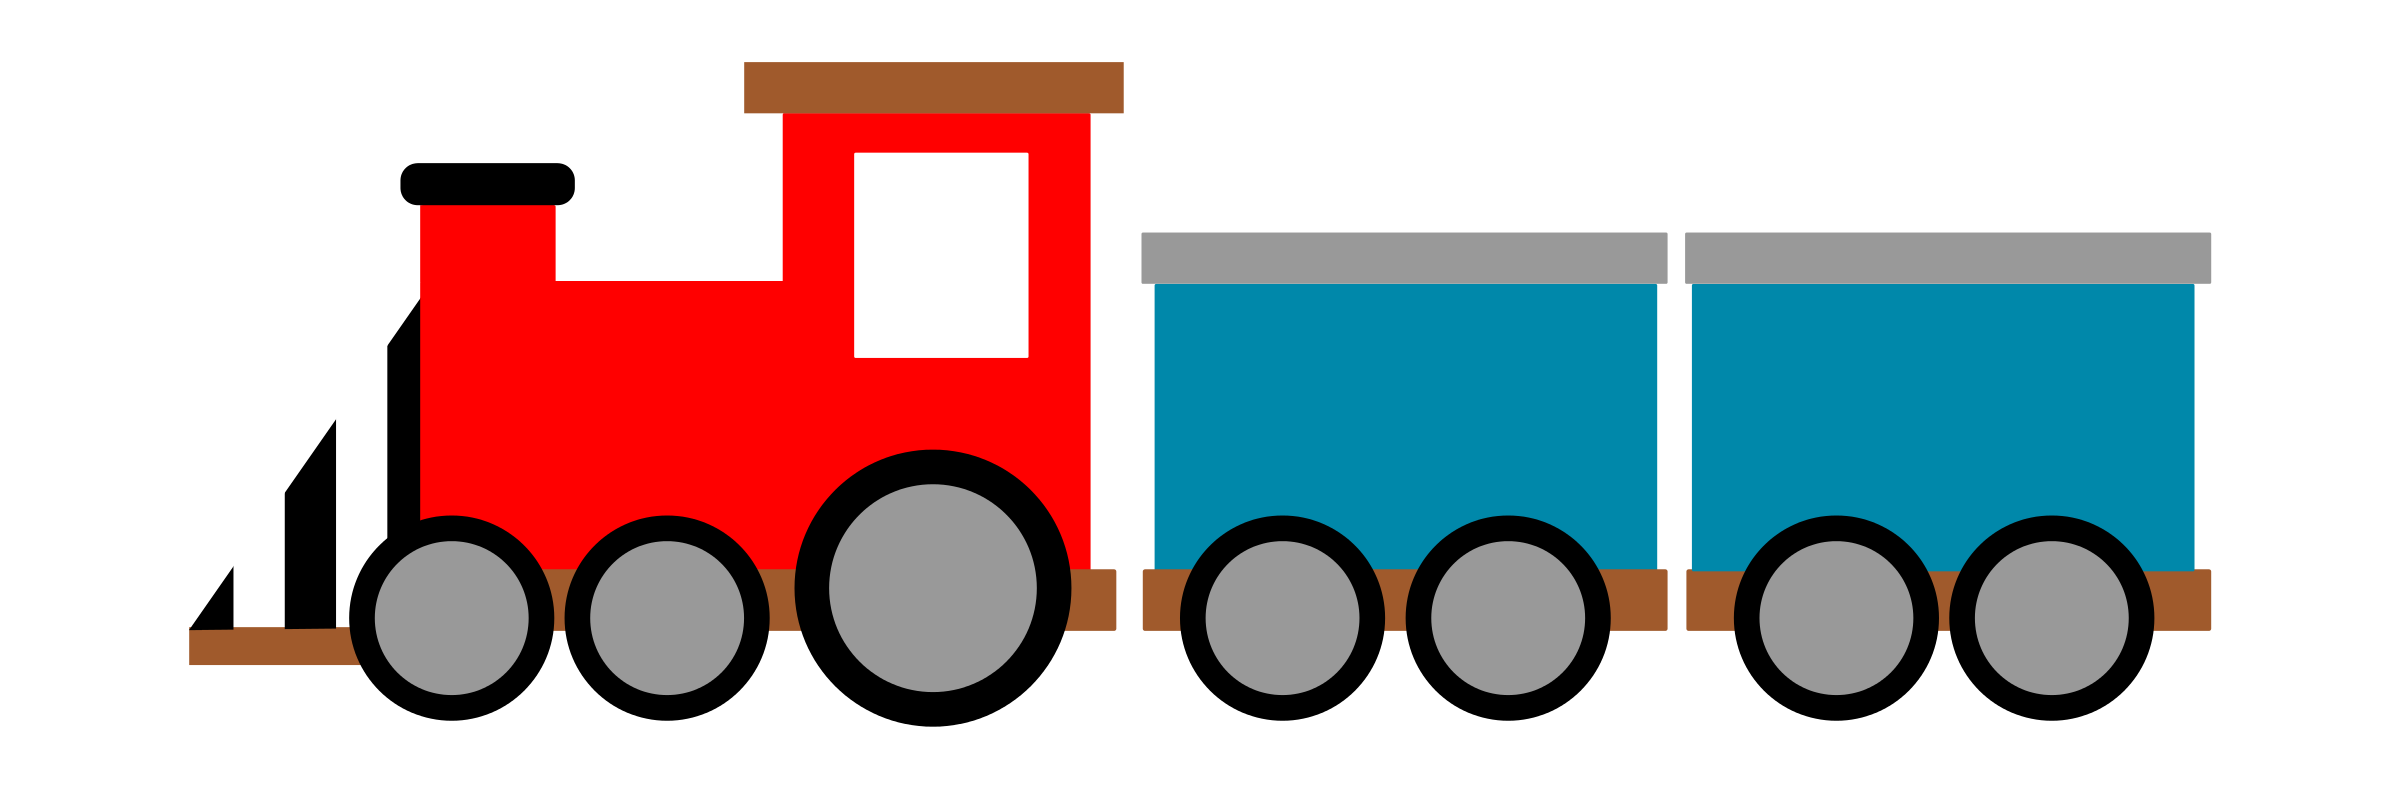 Track clipart side view. Train clip art coloring